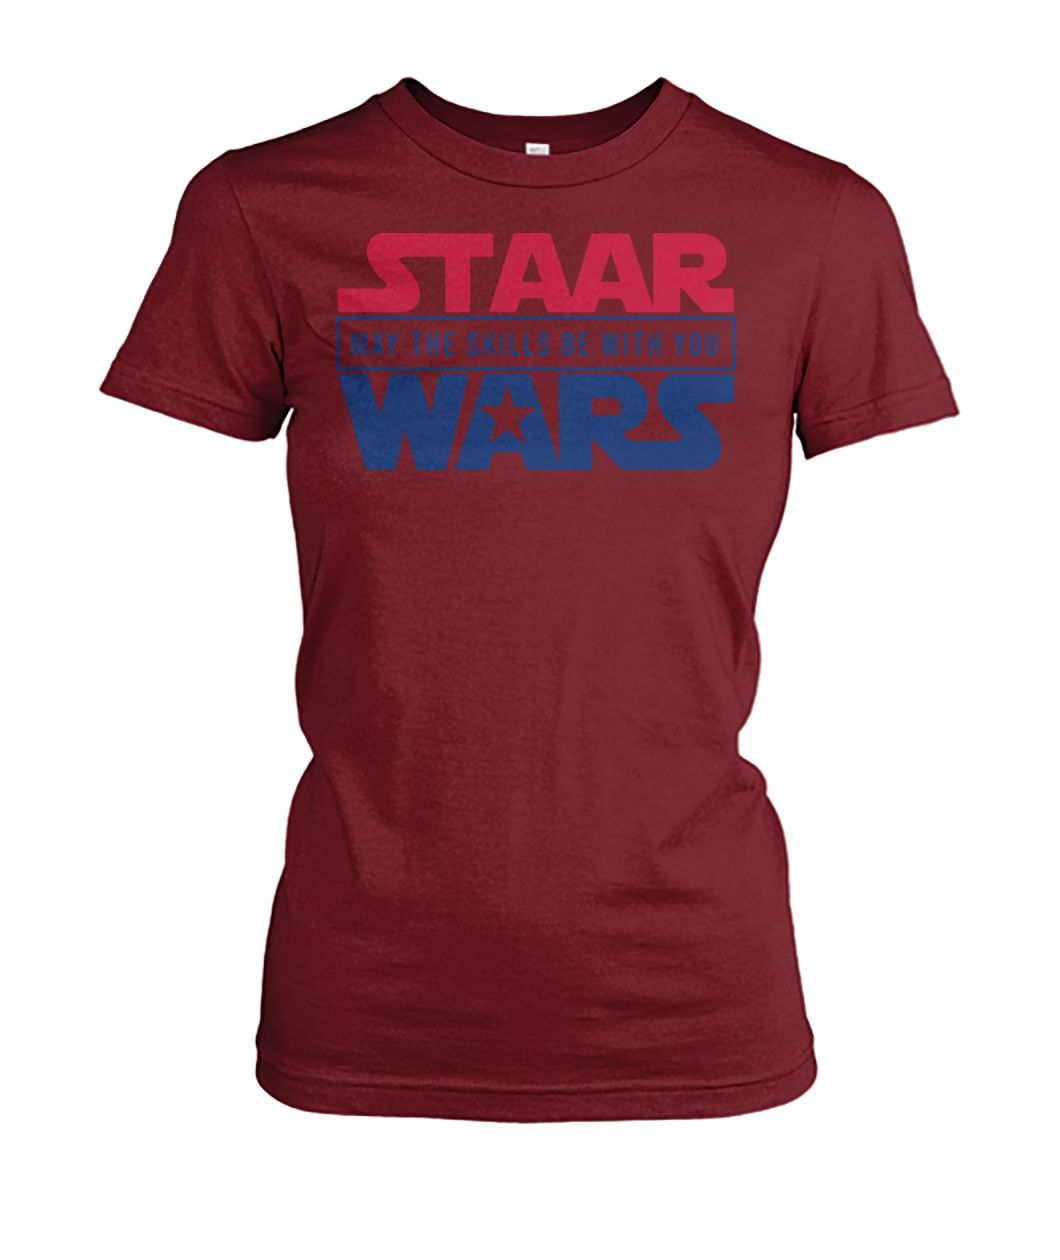 [Hot version] Staar Wars may the skills be with you shirt